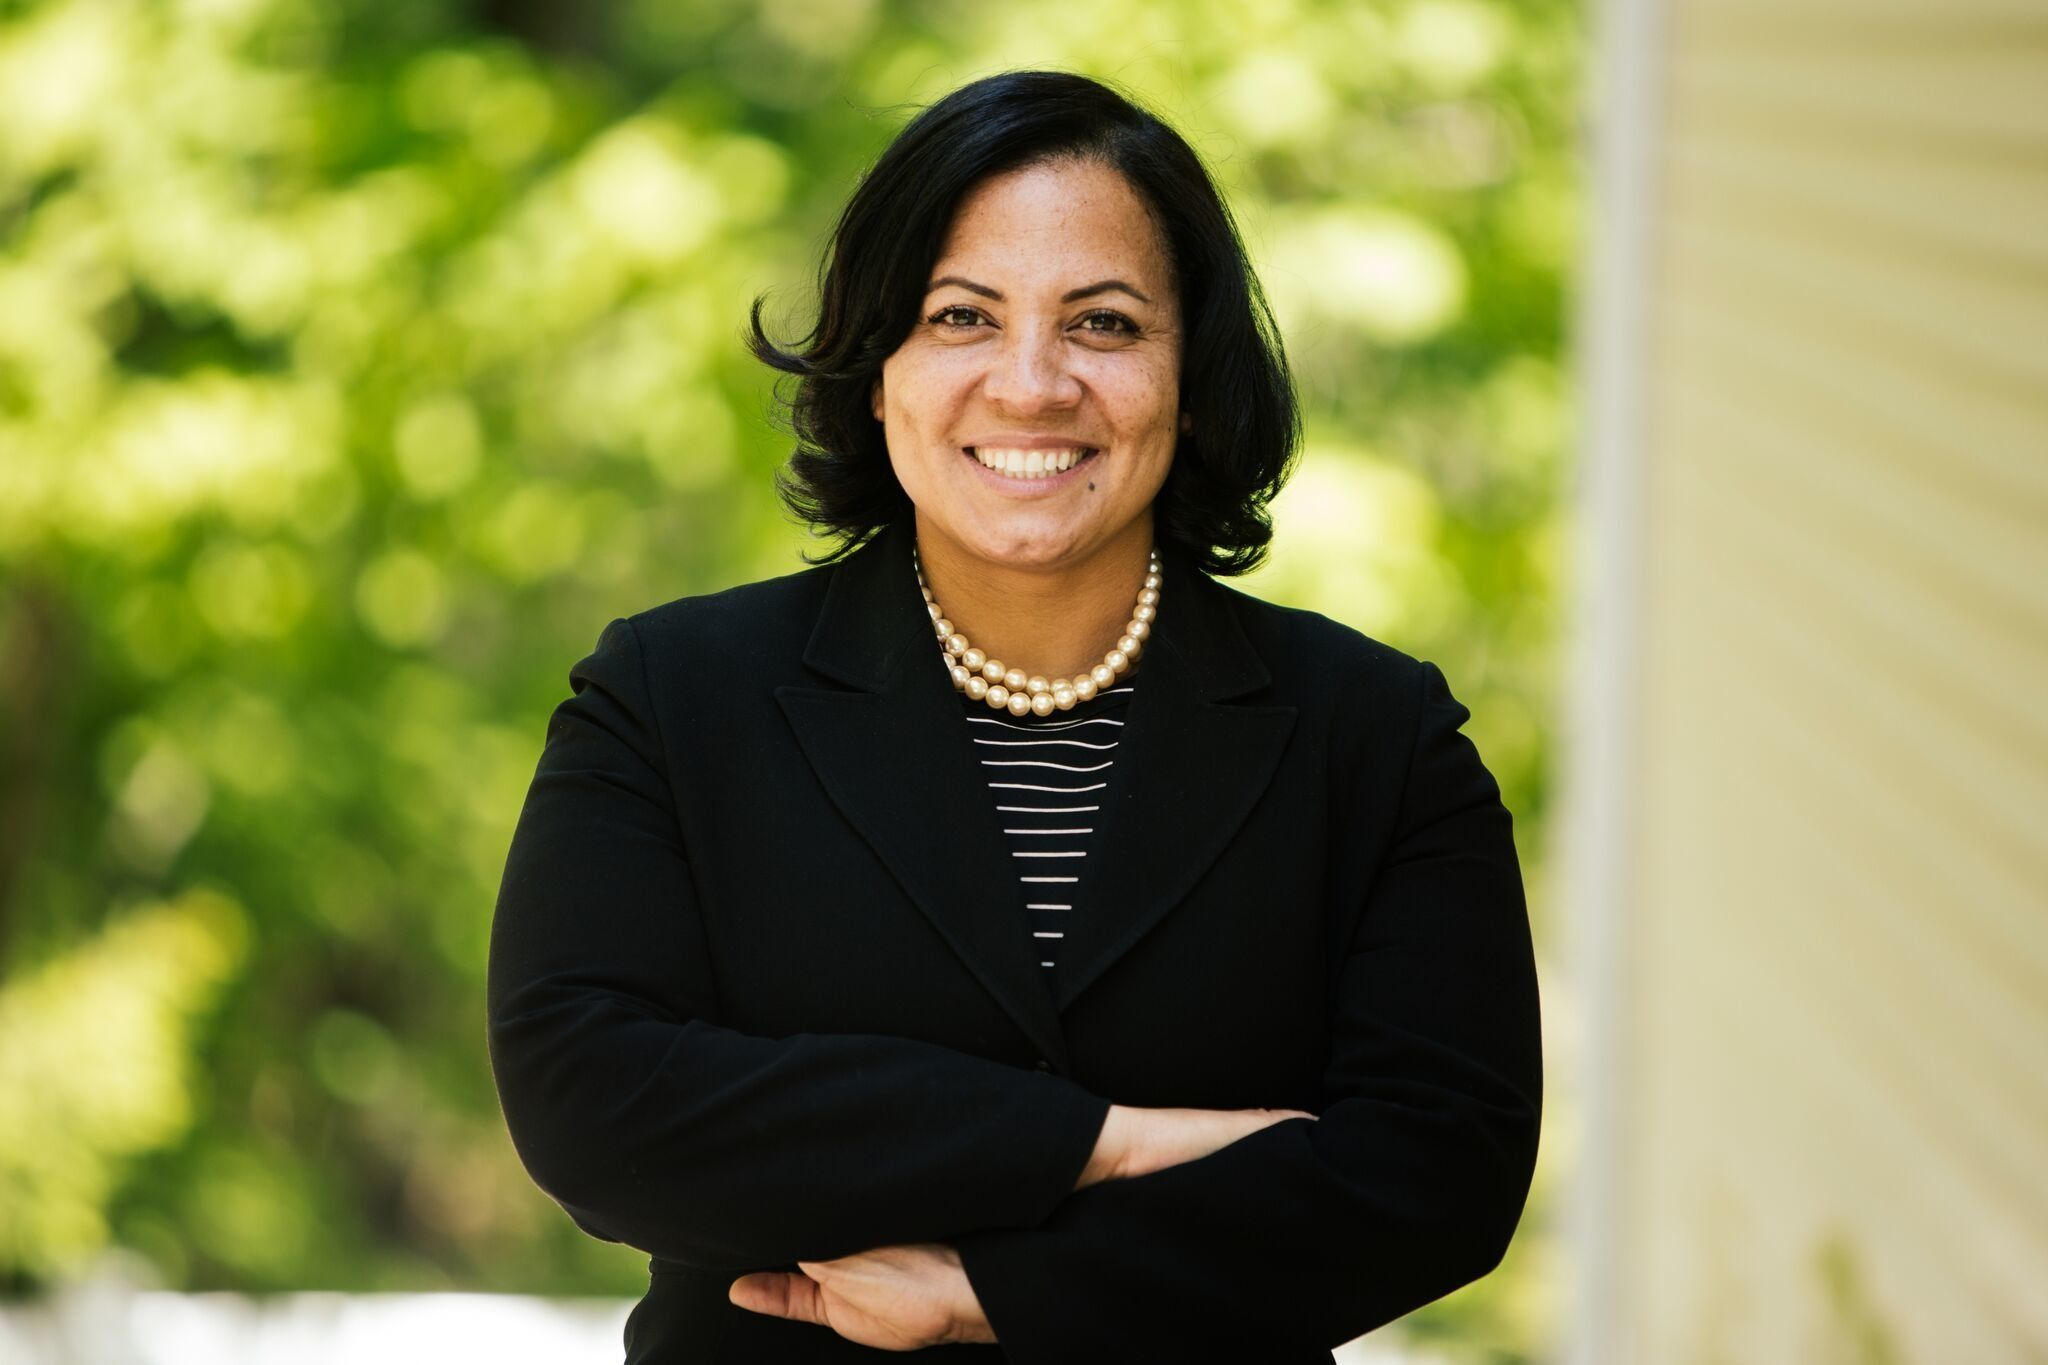 Rachael Rollins won her Democratic primary in Massachusetts on Tuesday